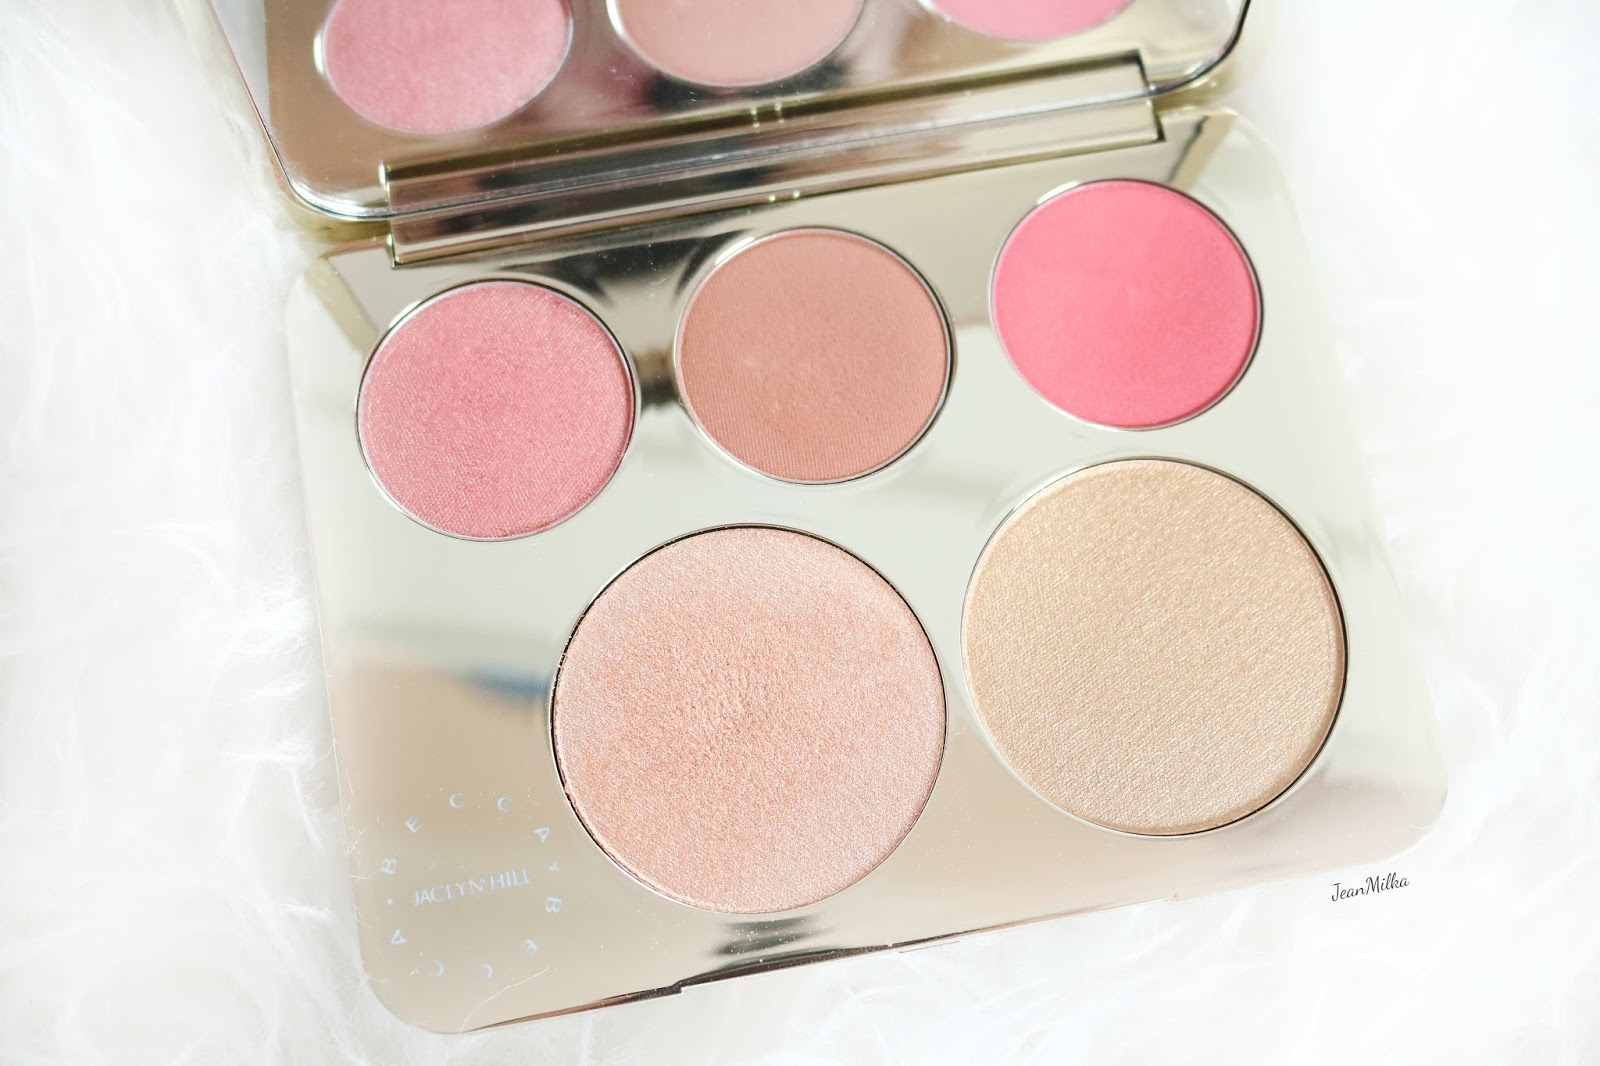 becca, jaclyn hill, becca x jaclyn hill, becca cosmetics, becca champagne face palette, jaclyn hill champagne pop, jaclyn hill champagne face palette, beauty blogger, indonesian beauty blogger